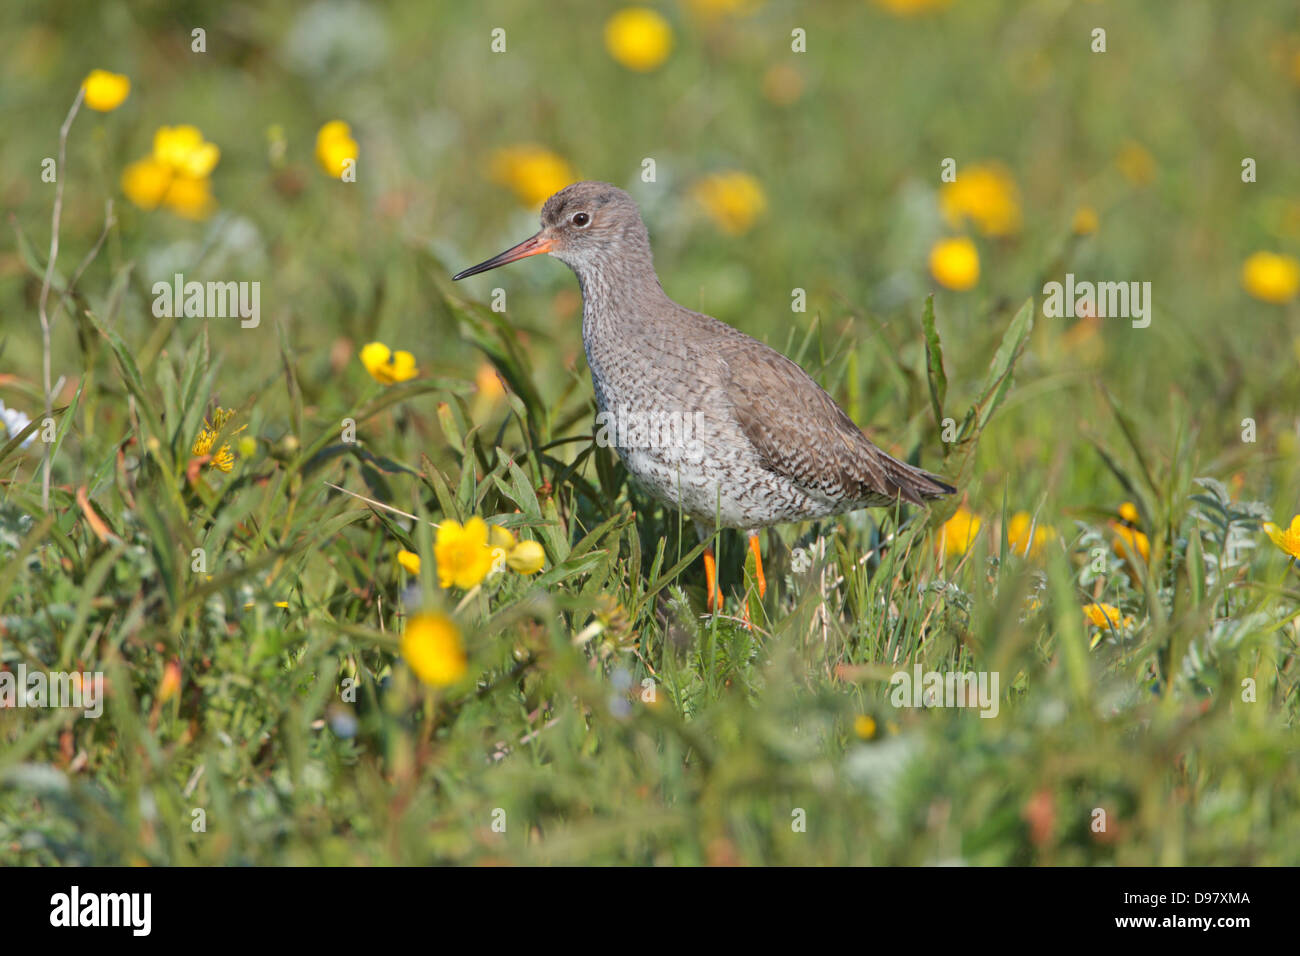 Adult Common Redshank Tringa totanus in breeding plumage in a field of flowers on North Uist Outer Hebrides, Scotland - Stock Image